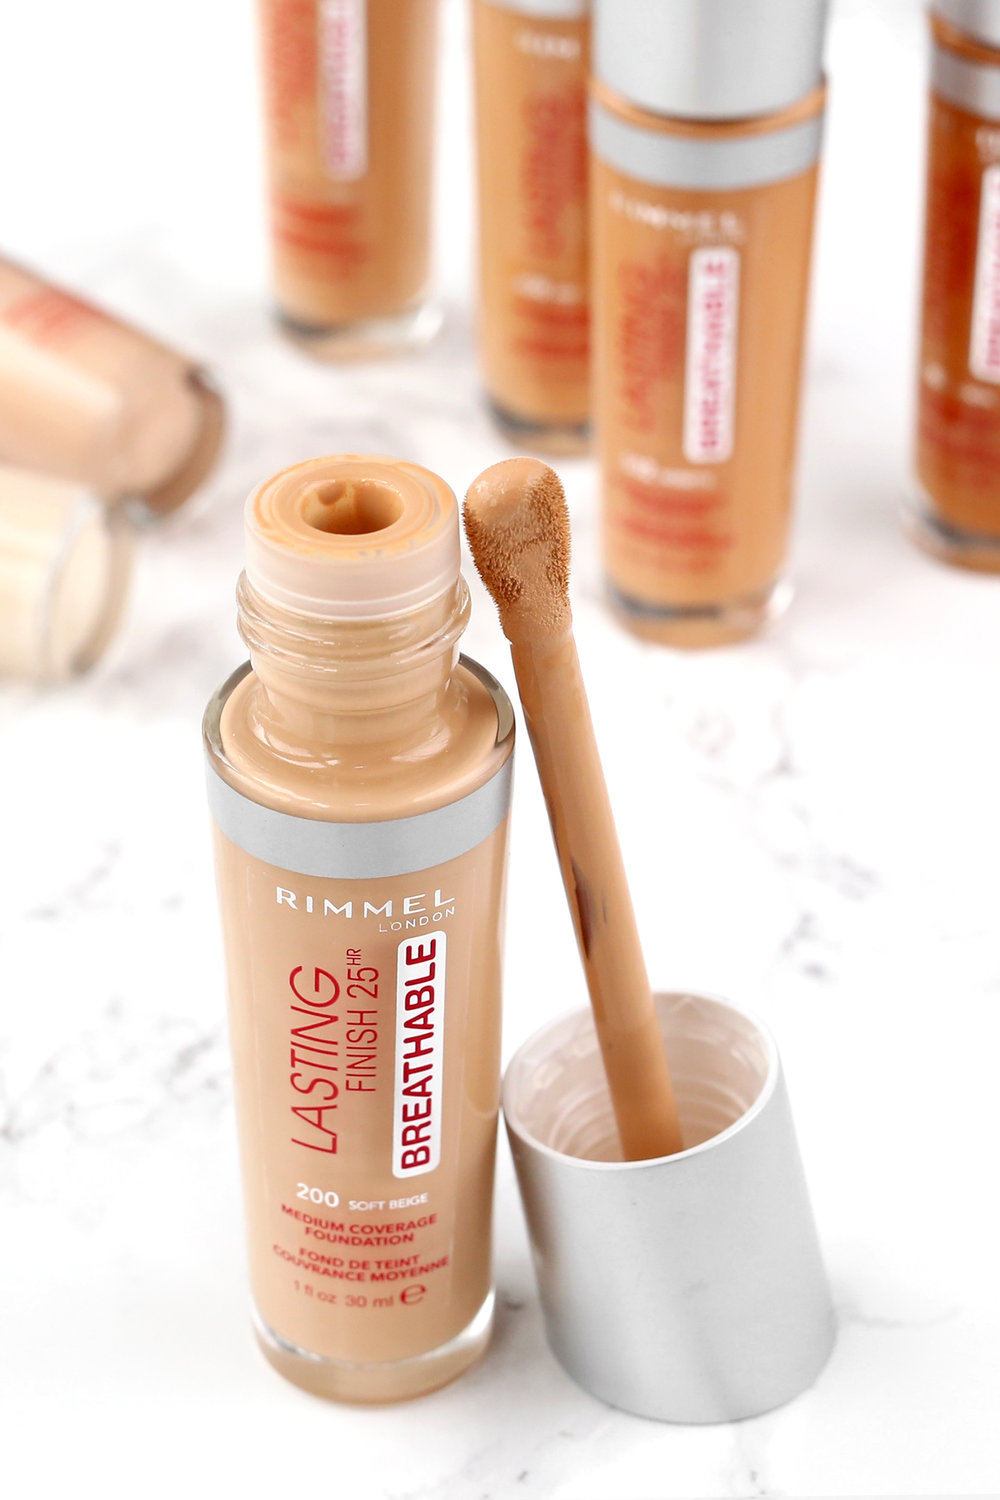 Review- Rimmel's Lasting Finish Breathable Collection - 25 hour wear foundation, concealer, and breathable primer - woahstyle.com - toronto beauty blog by nathalie martin_7277.jpg